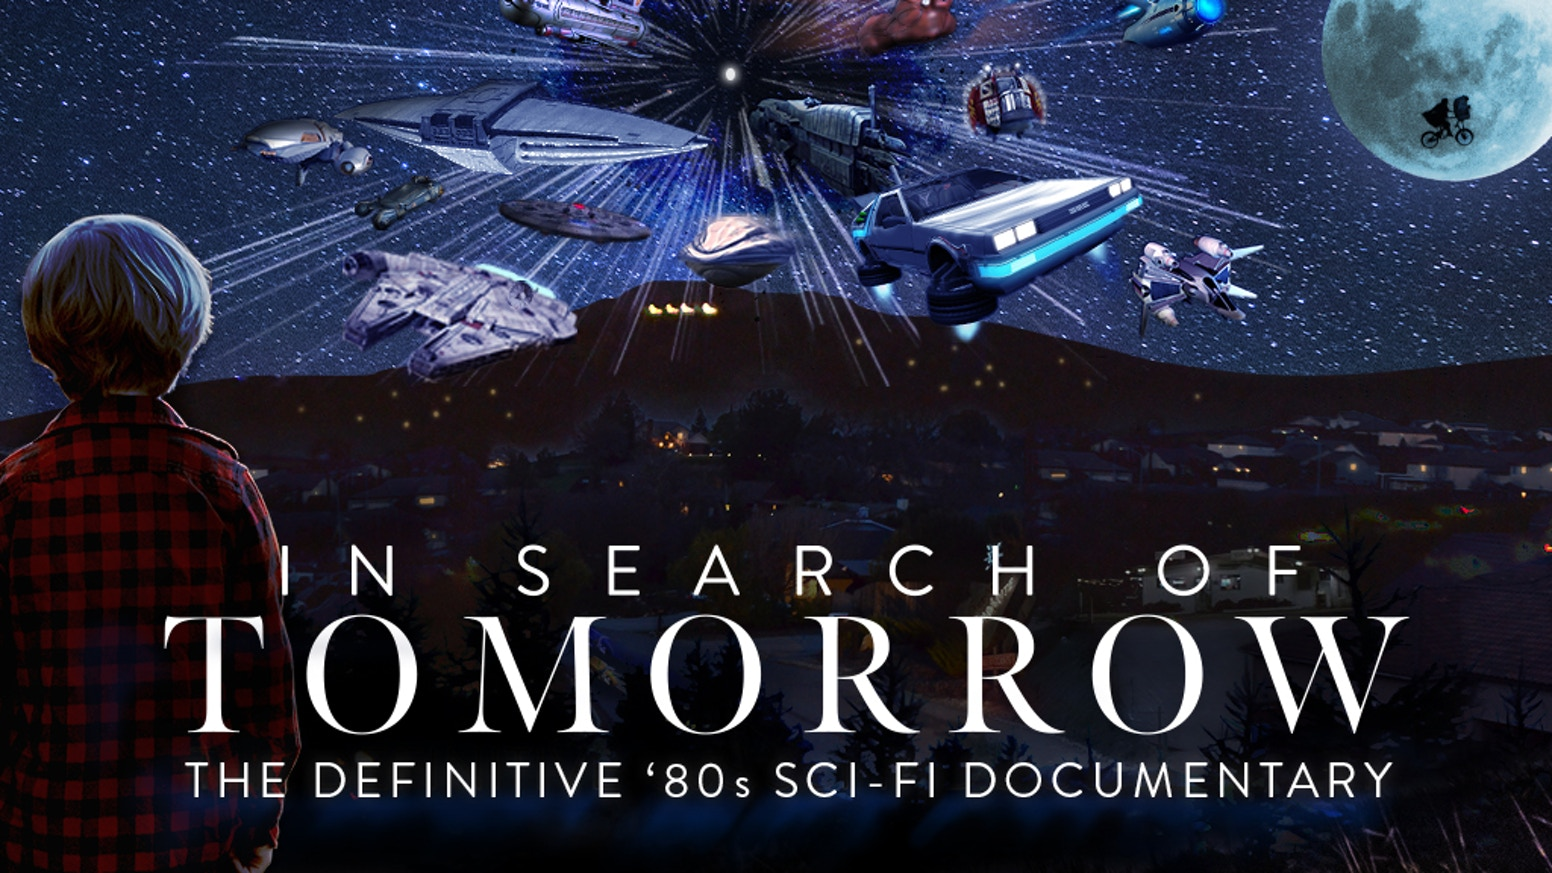 A four-hour-plus retrospective of '80s Sci-Fi movies featuring interviews with actors, directors, writers, SFX experts, and composers. Late to the party? You've got until 18th June to get on board using CrowdOx: